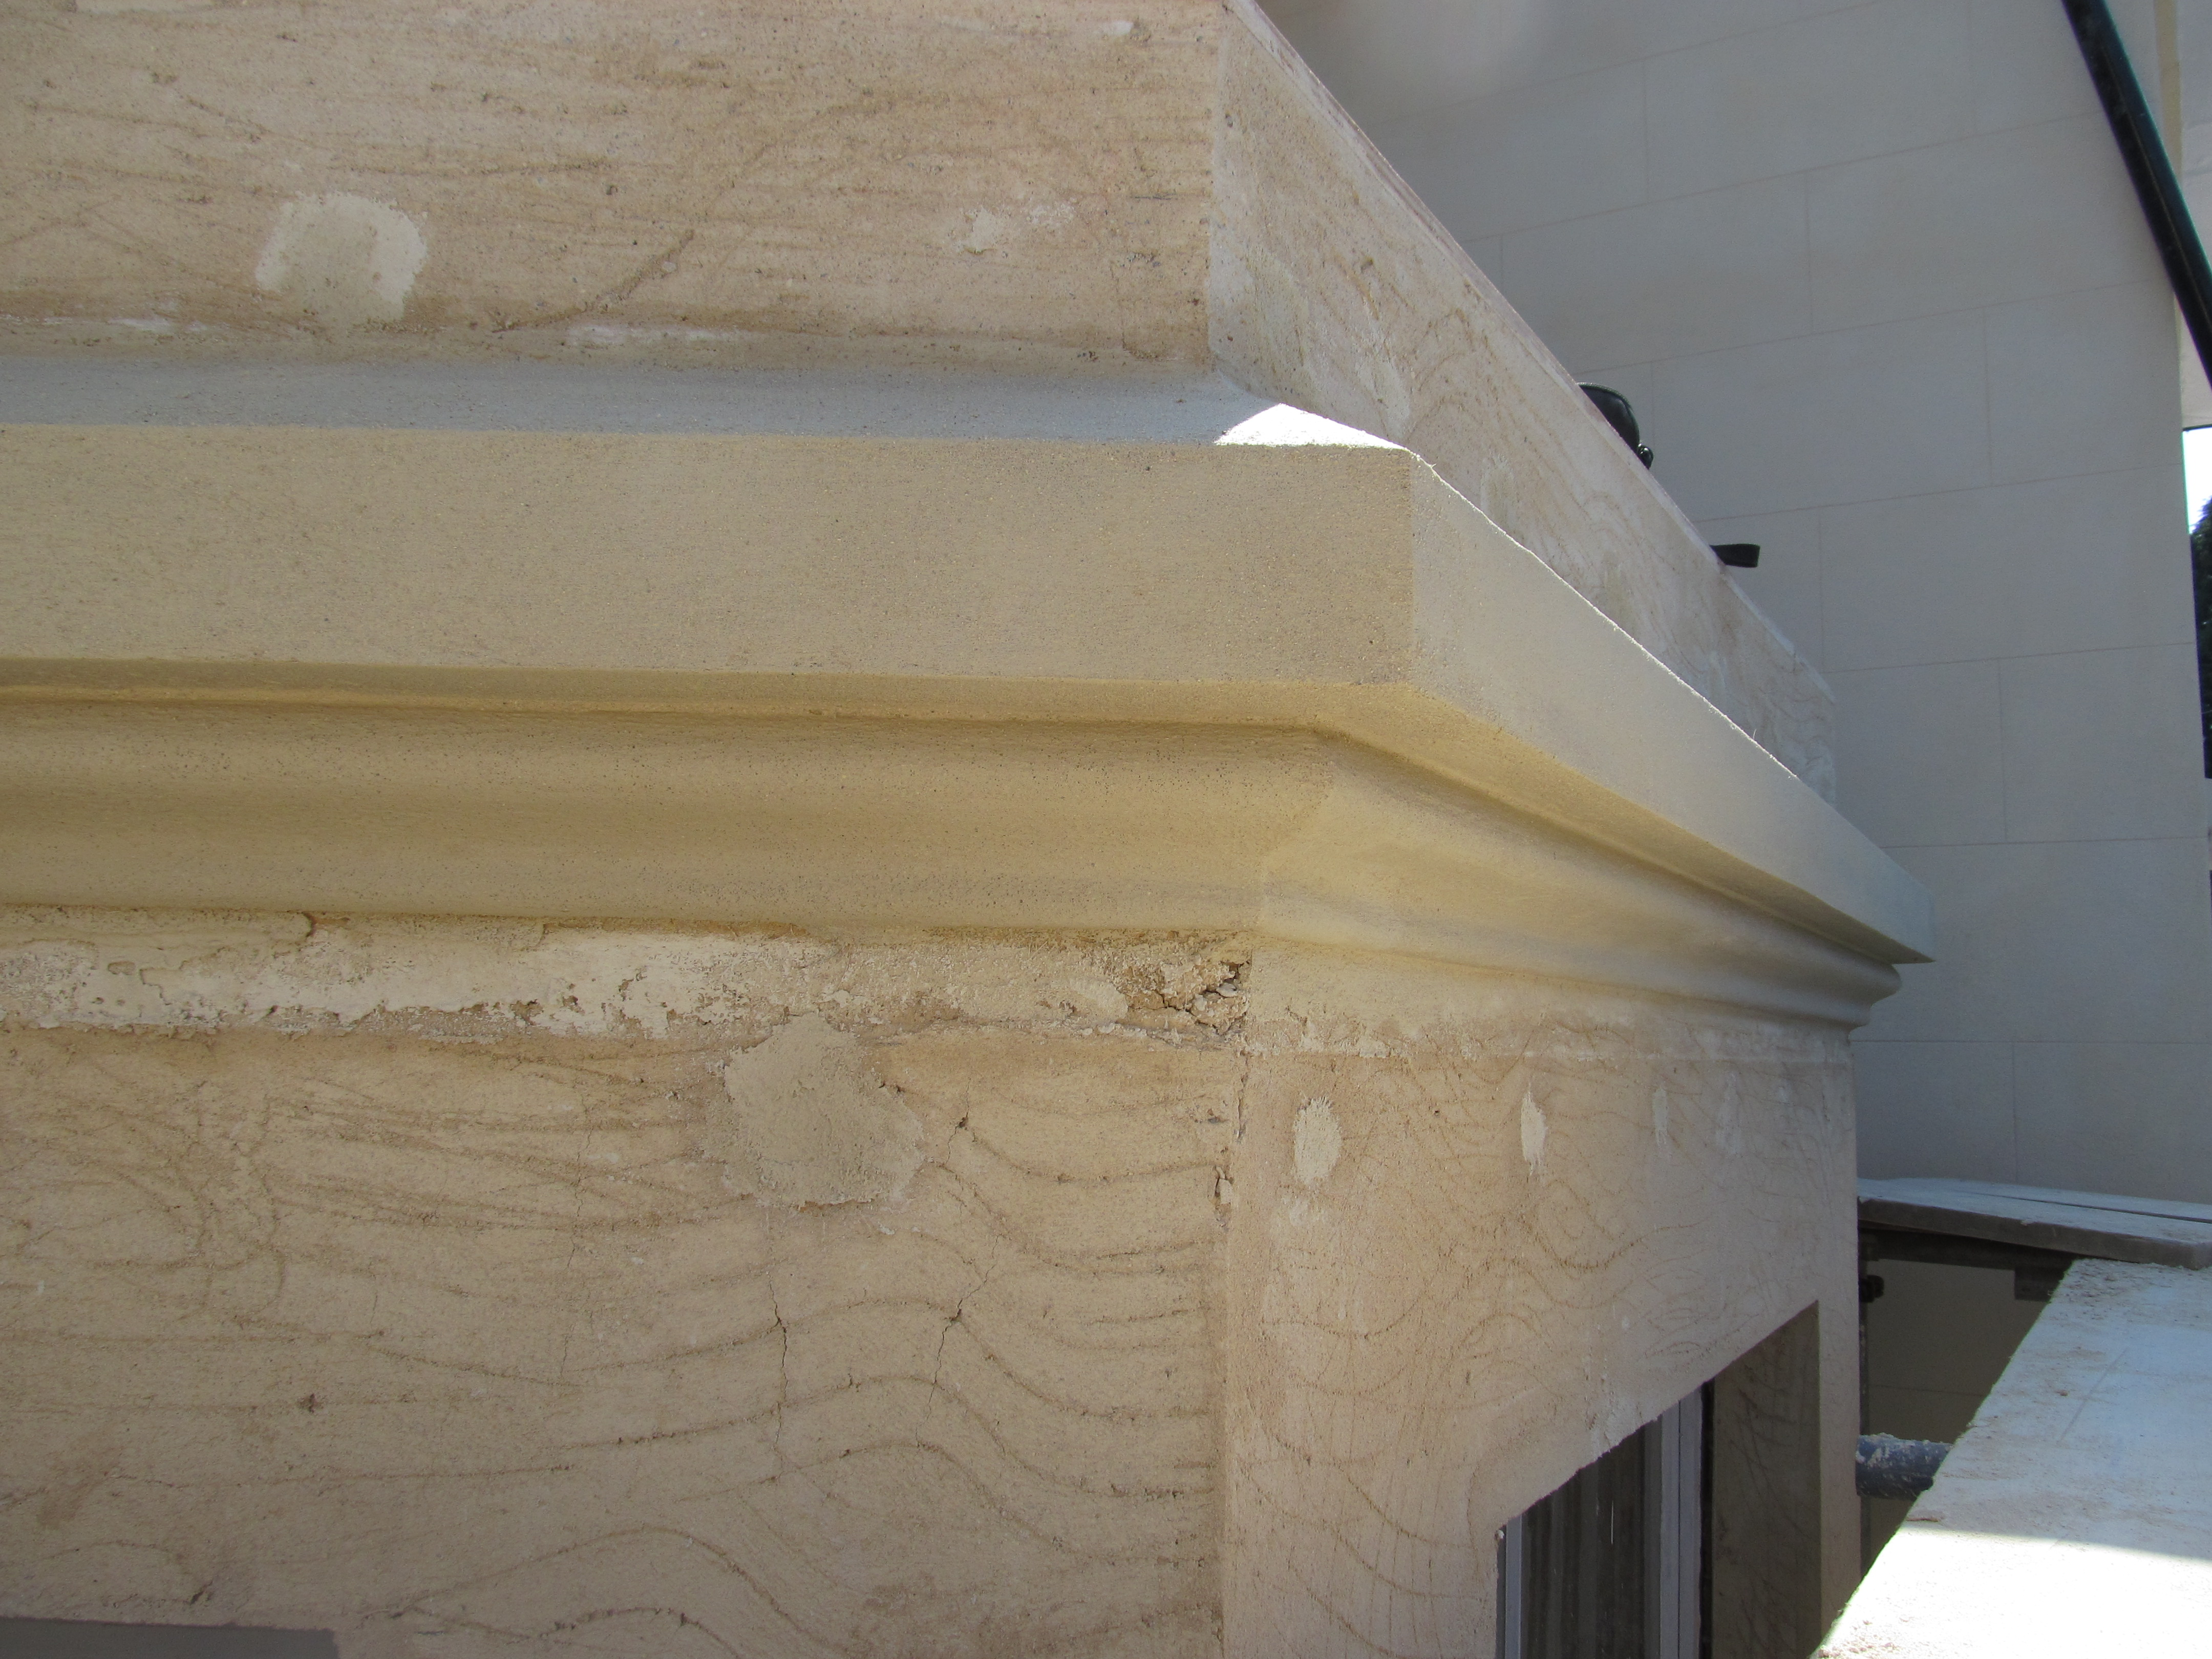 lime cornice complete